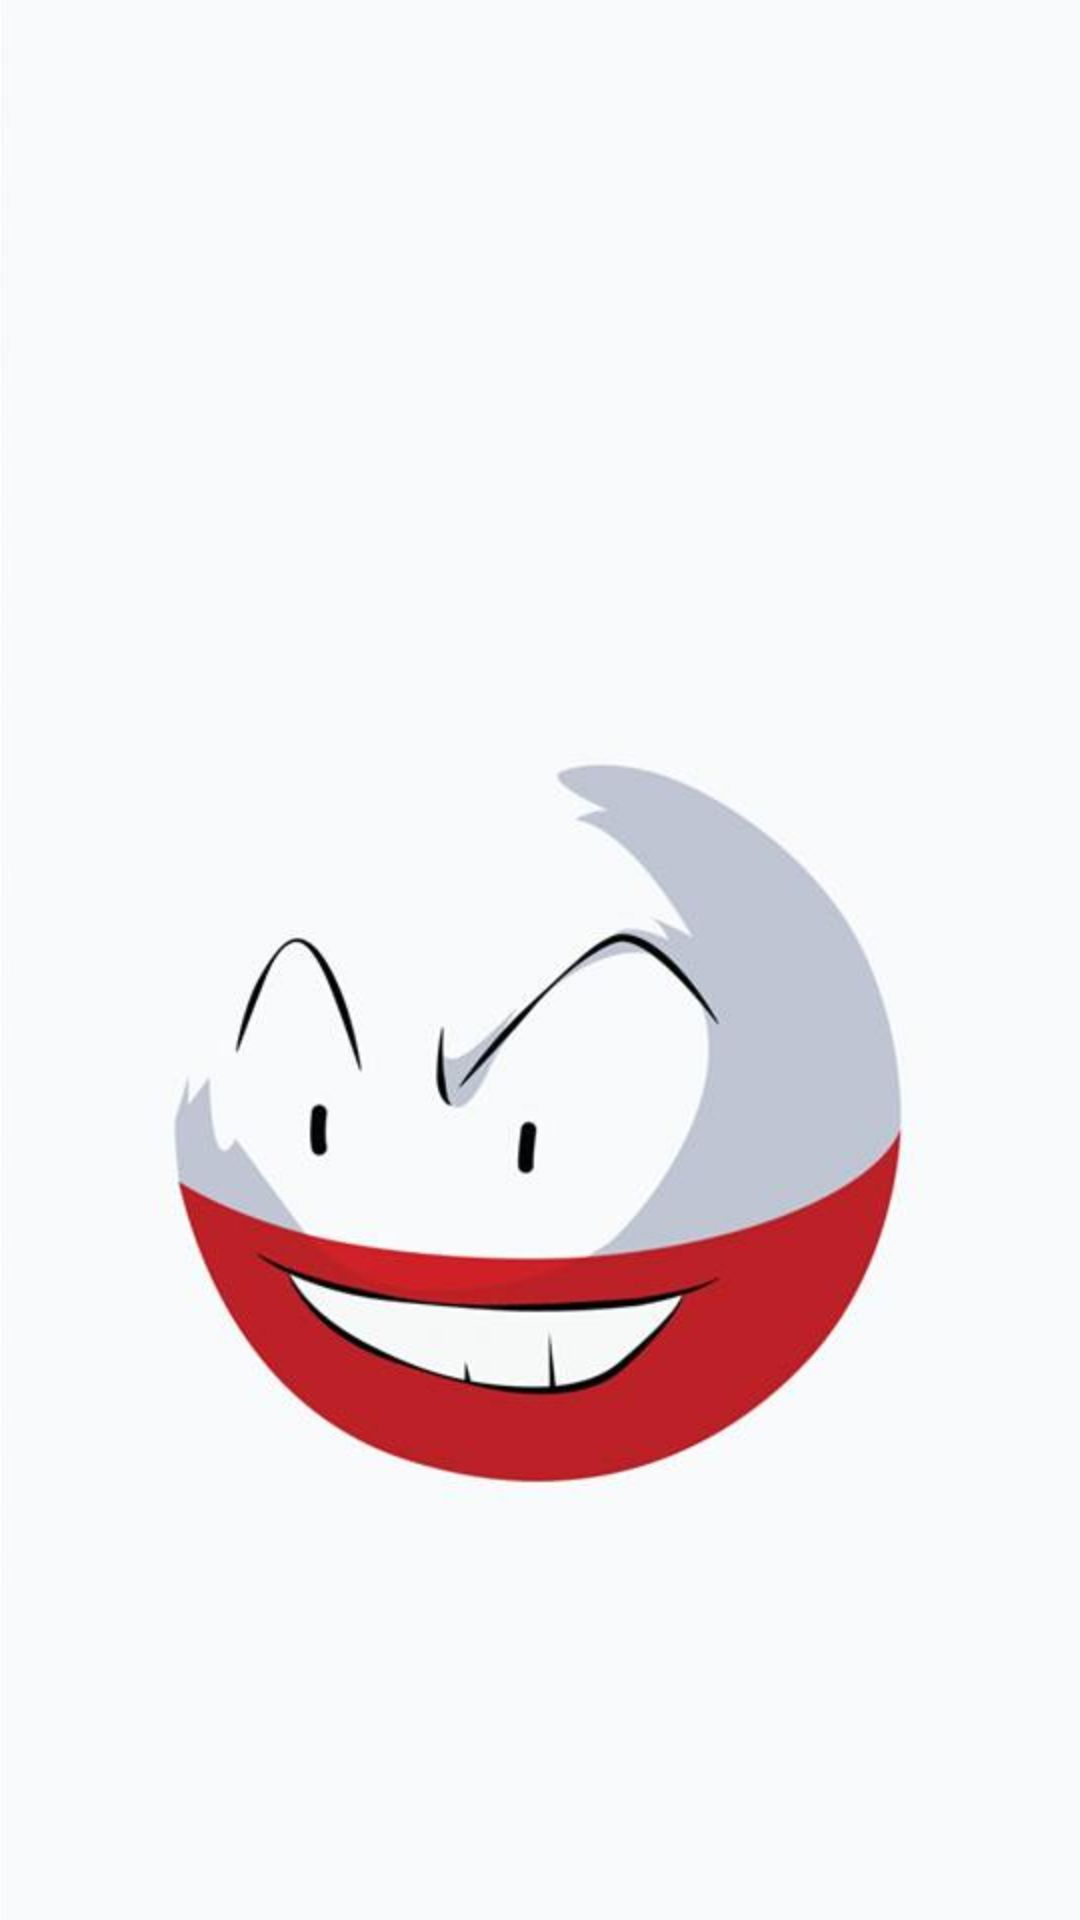 Electrode – Tap to see more Pokemon Go iPhone wallpaper! @mobile9 …